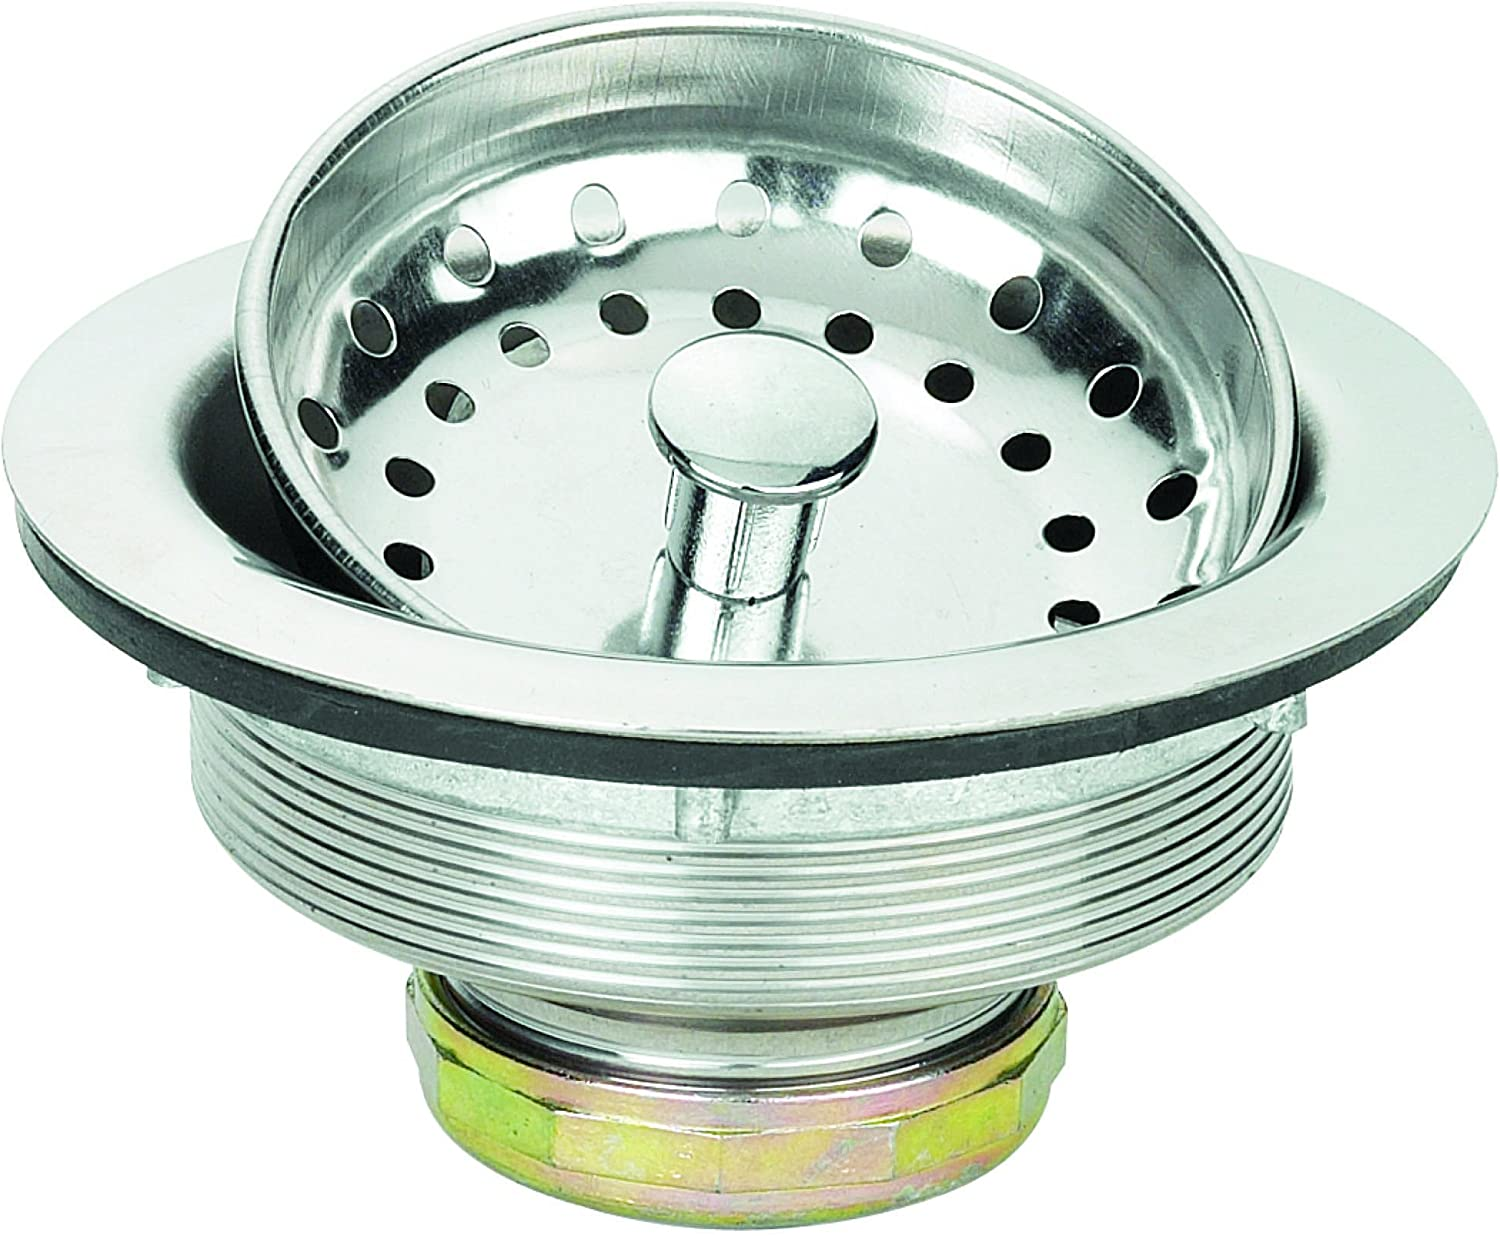 Master Equipment Stainless Steel Tub Strainers - Effective Strainers Designed to Prevent Pet Hair from Entering Drains in Grooming Tubs